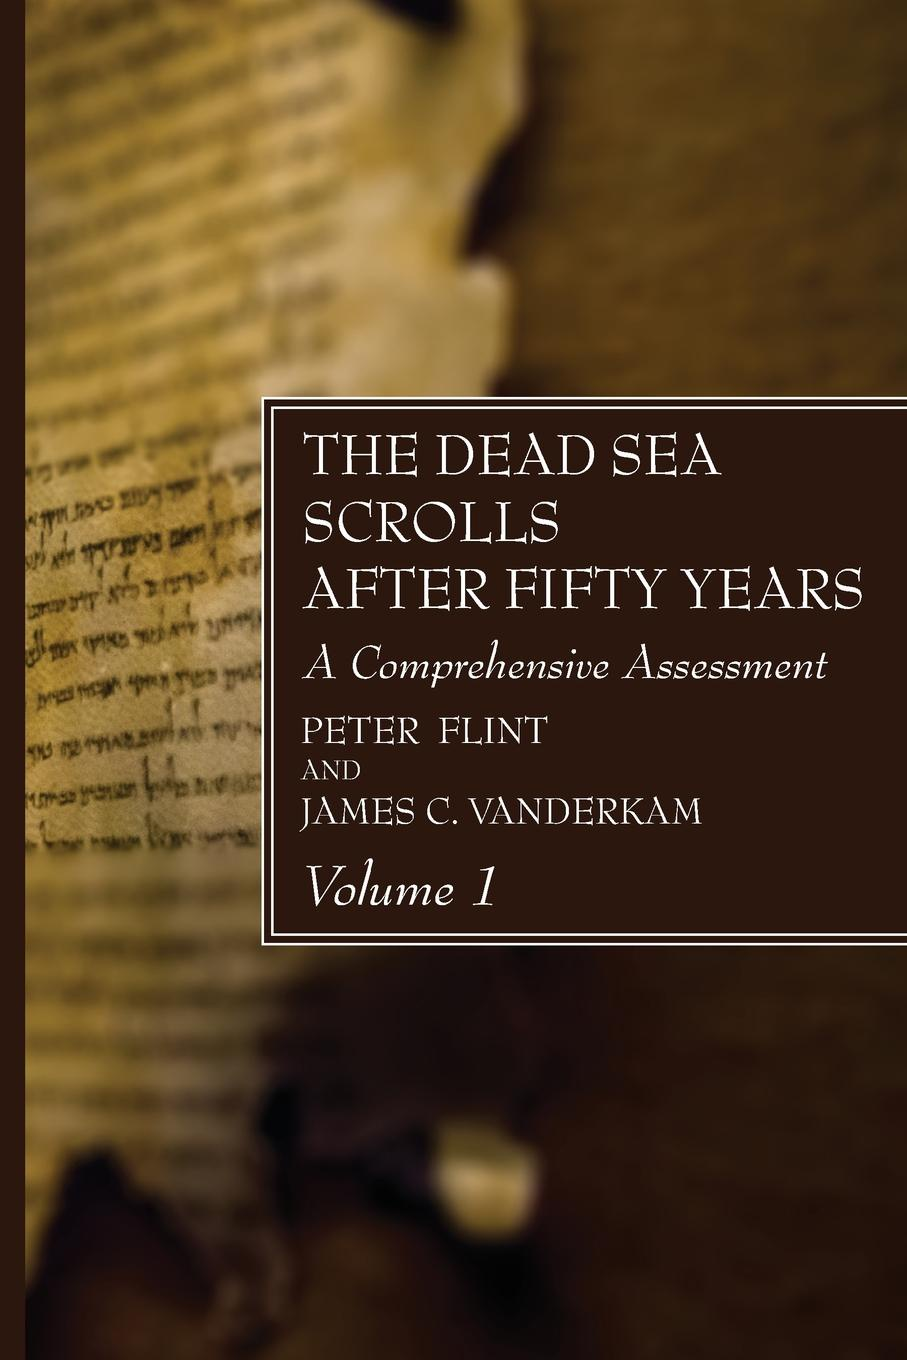 Peter Flint, James C. Vanderkam The Dead Sea Scrolls After Fifty Years, Volume 1